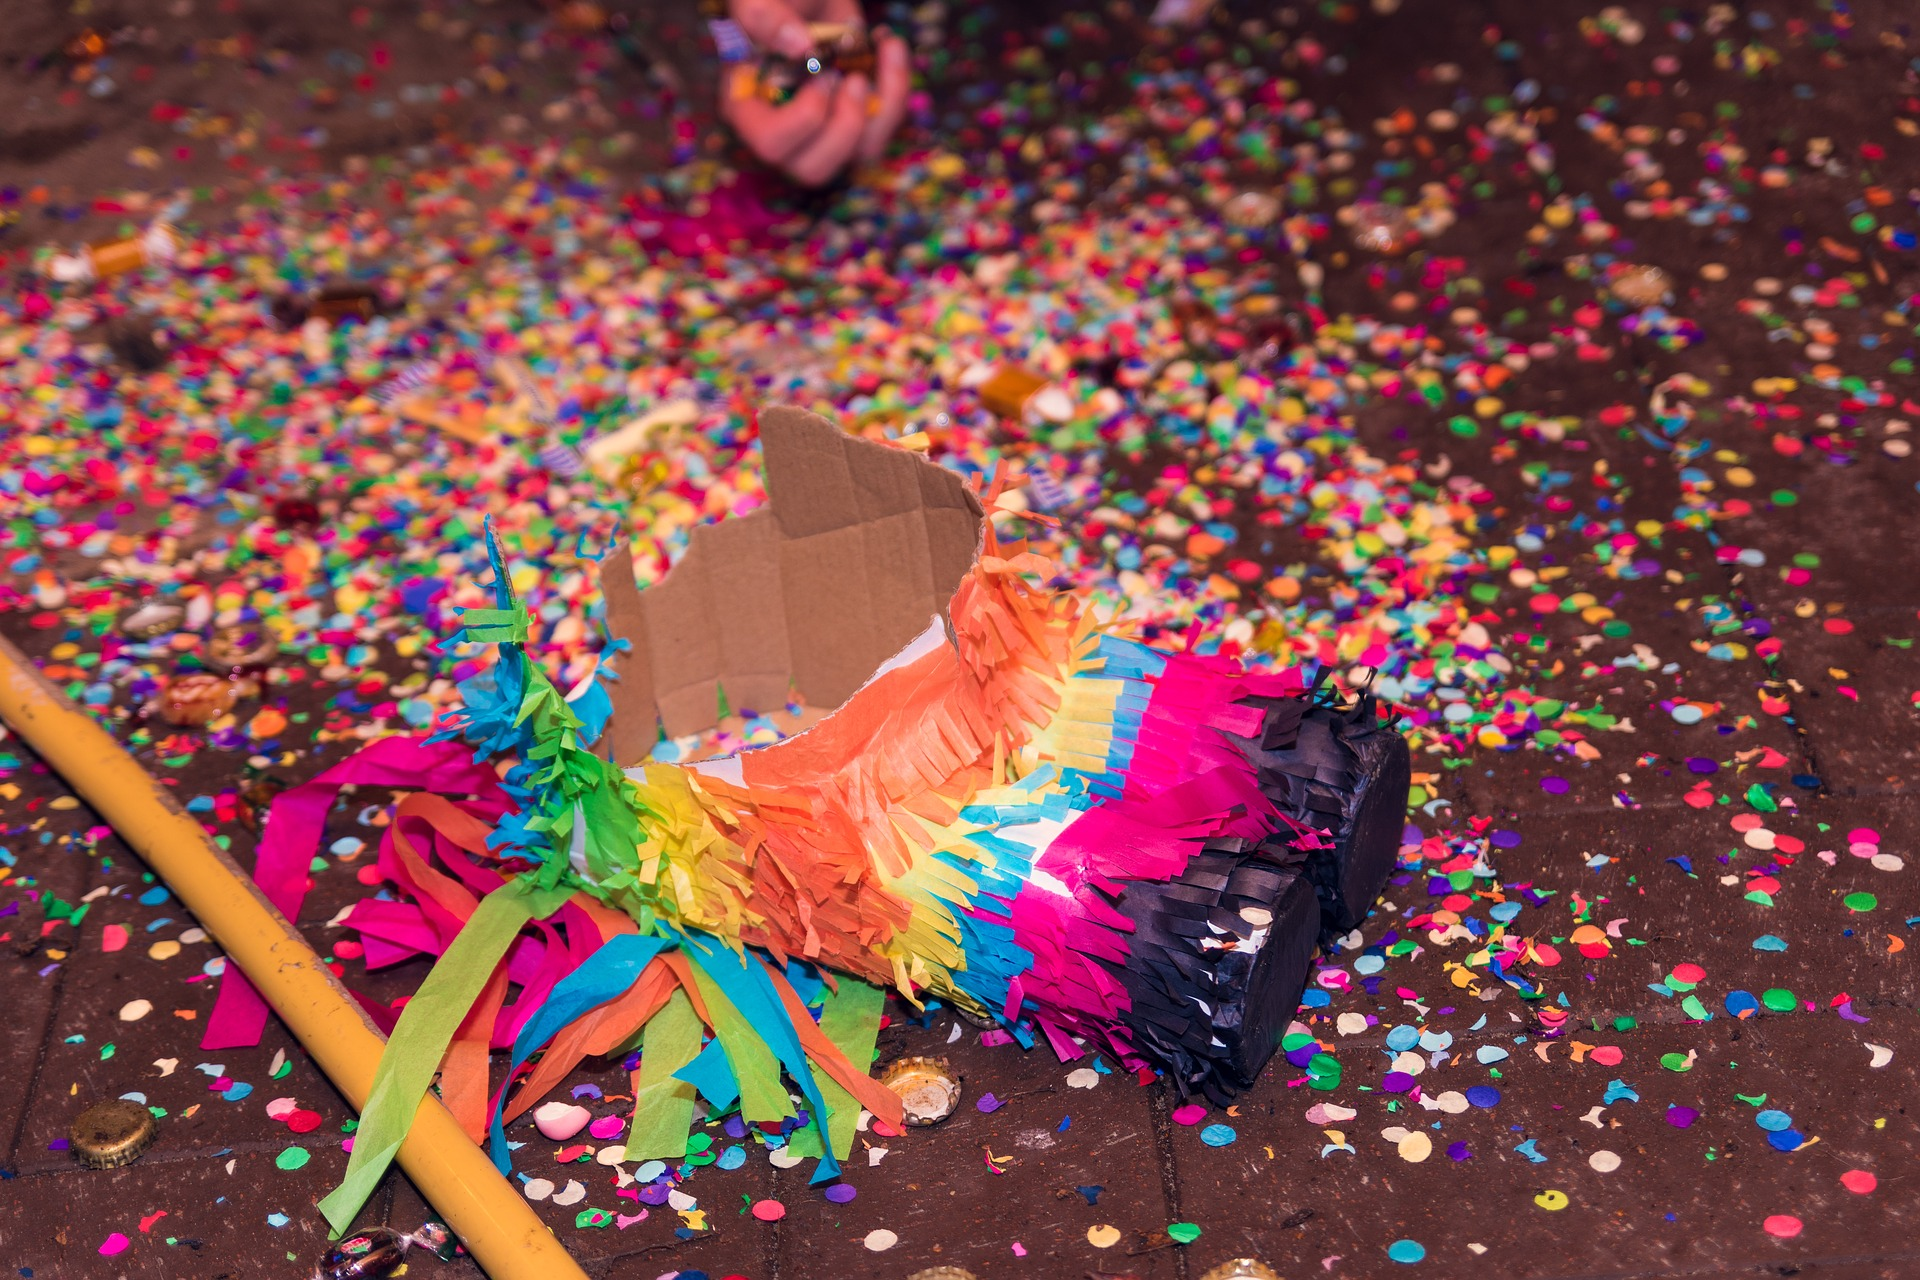 Exploded Pinata